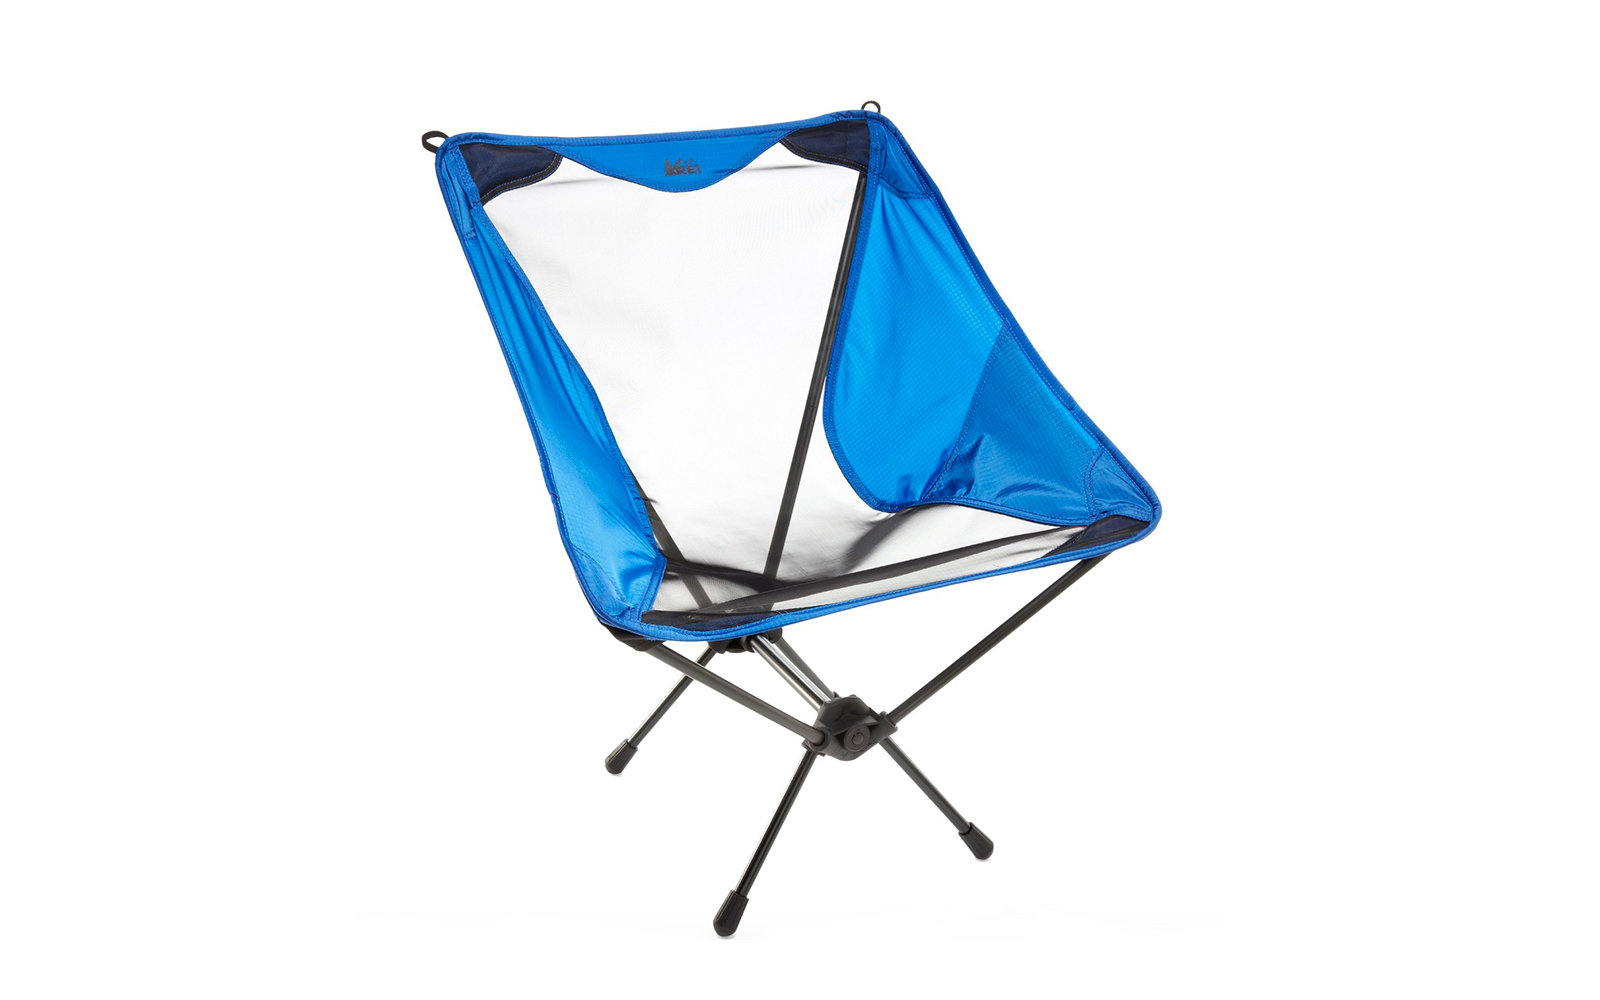 rei camp x chair white wicker rocking chairs the best folding camping travel 43 leisure